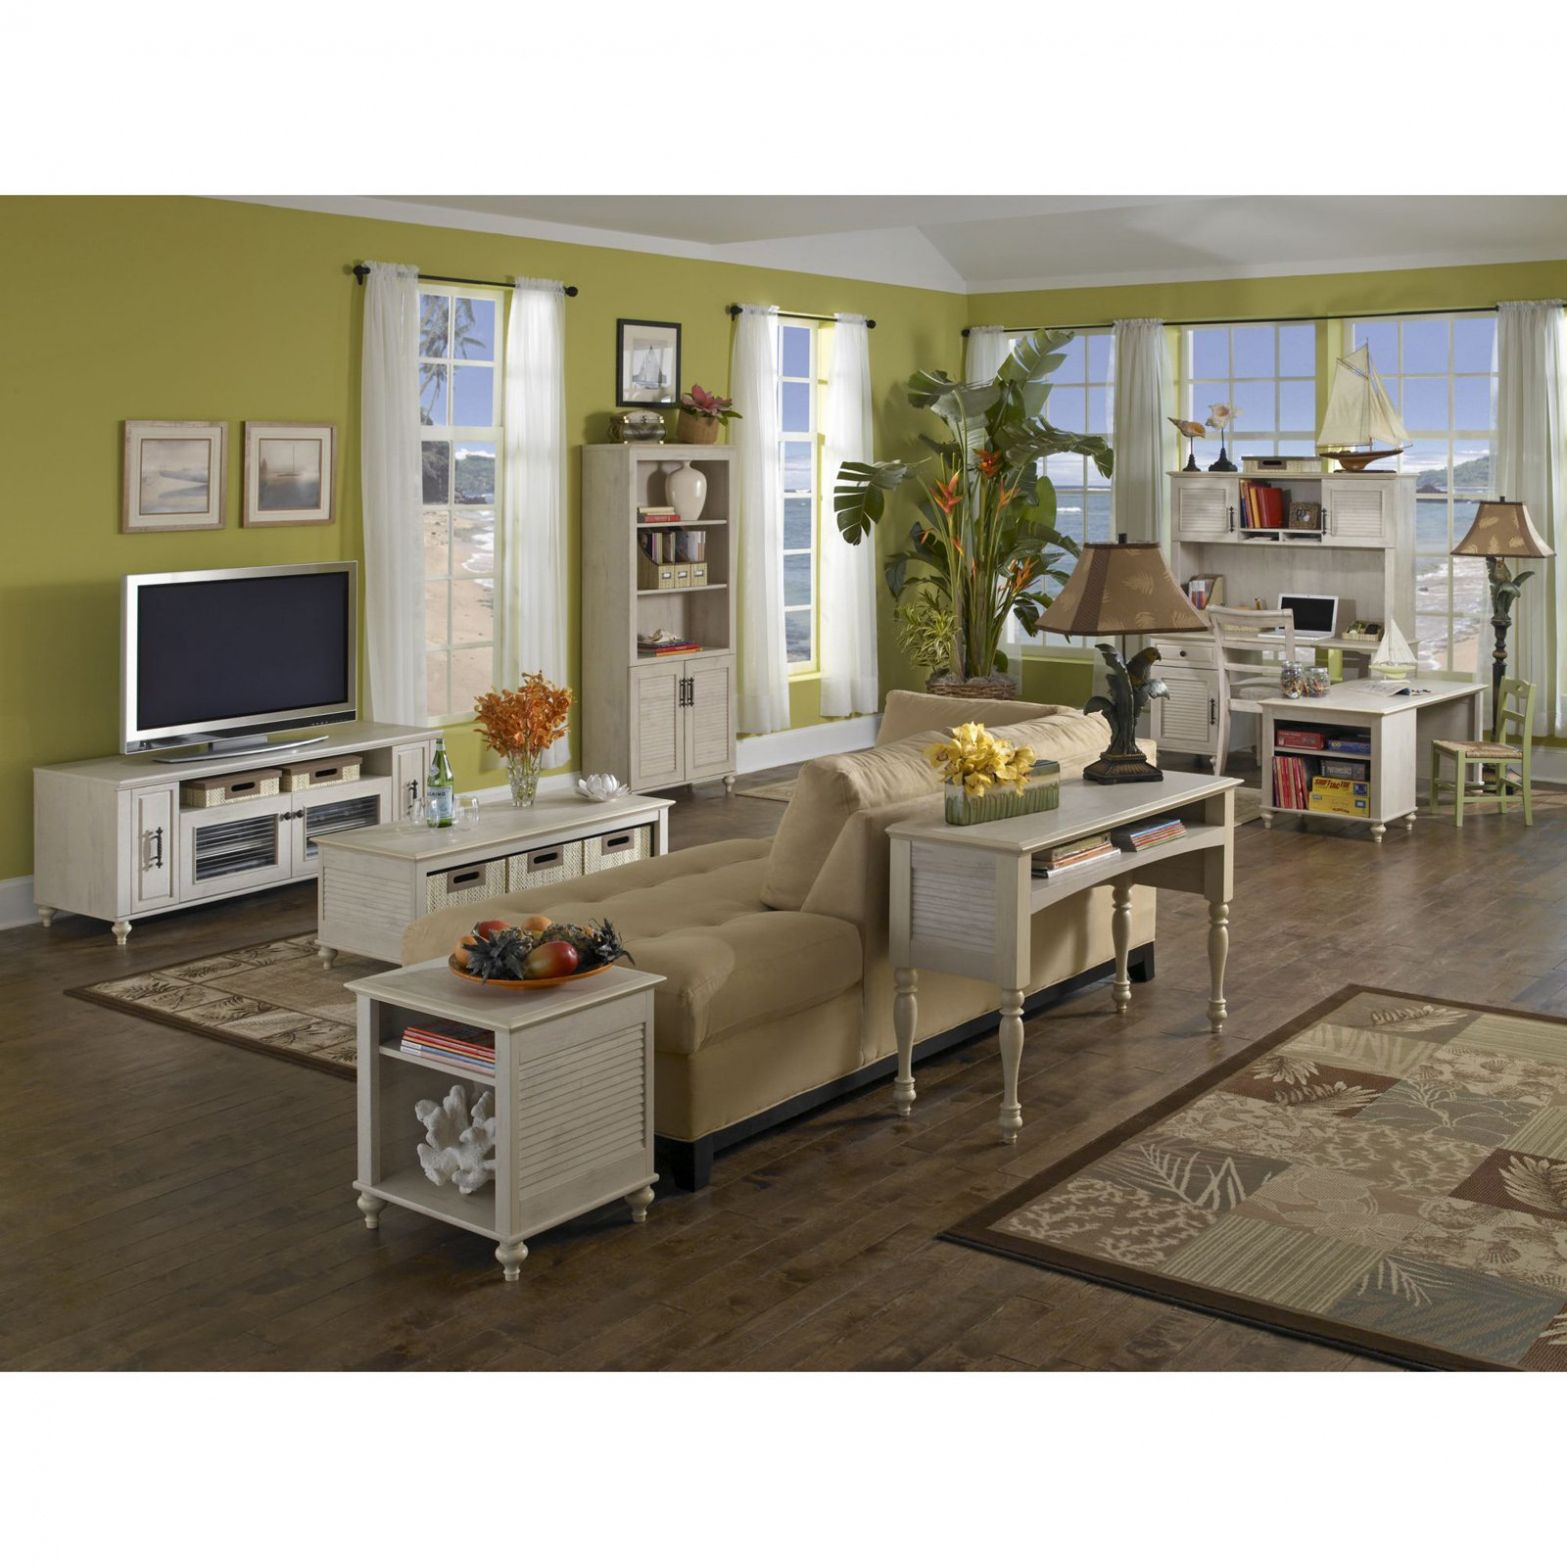 2018 Kathy Ireland Office By Bush Furniture For Home Check More At Http